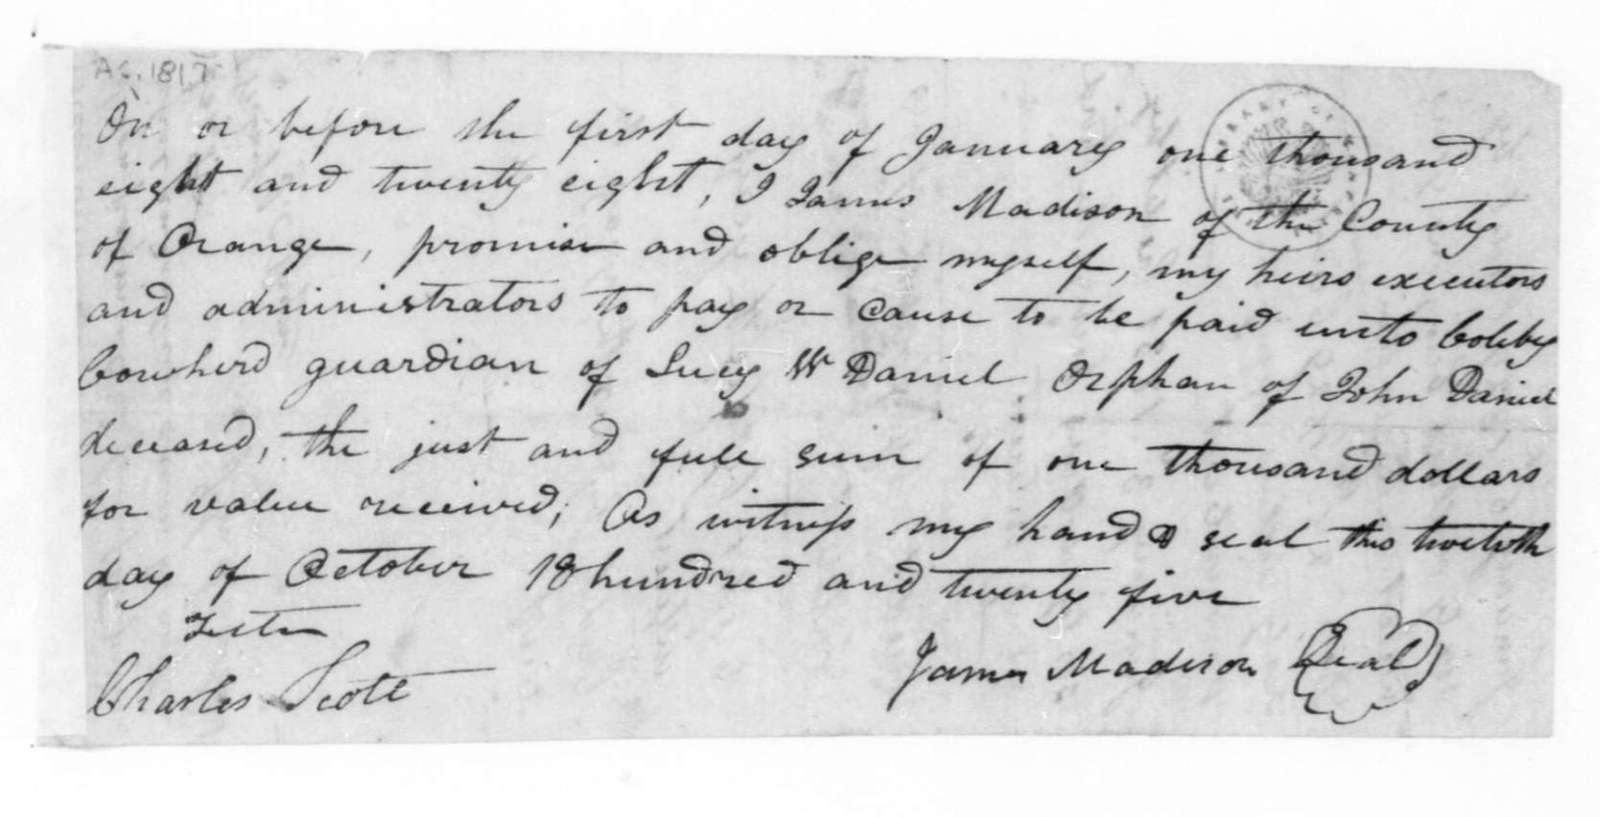 James Madison to John S. Cowherd, October 20, 1825. Promissory Note.